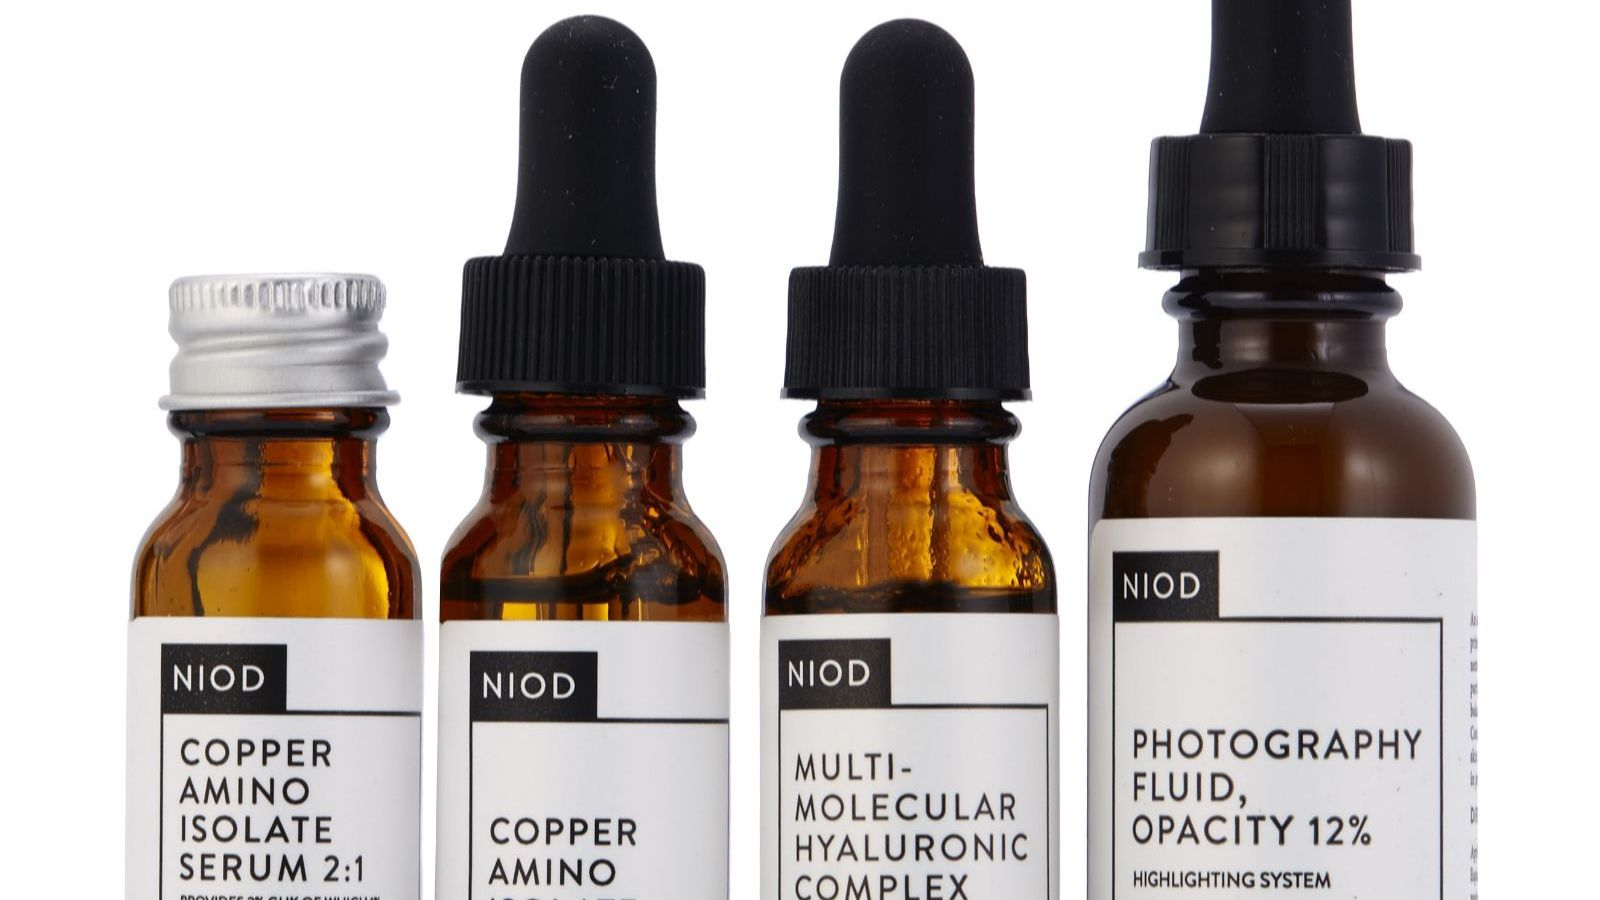 The Best Products From NIOD to Stock Up On ASAP